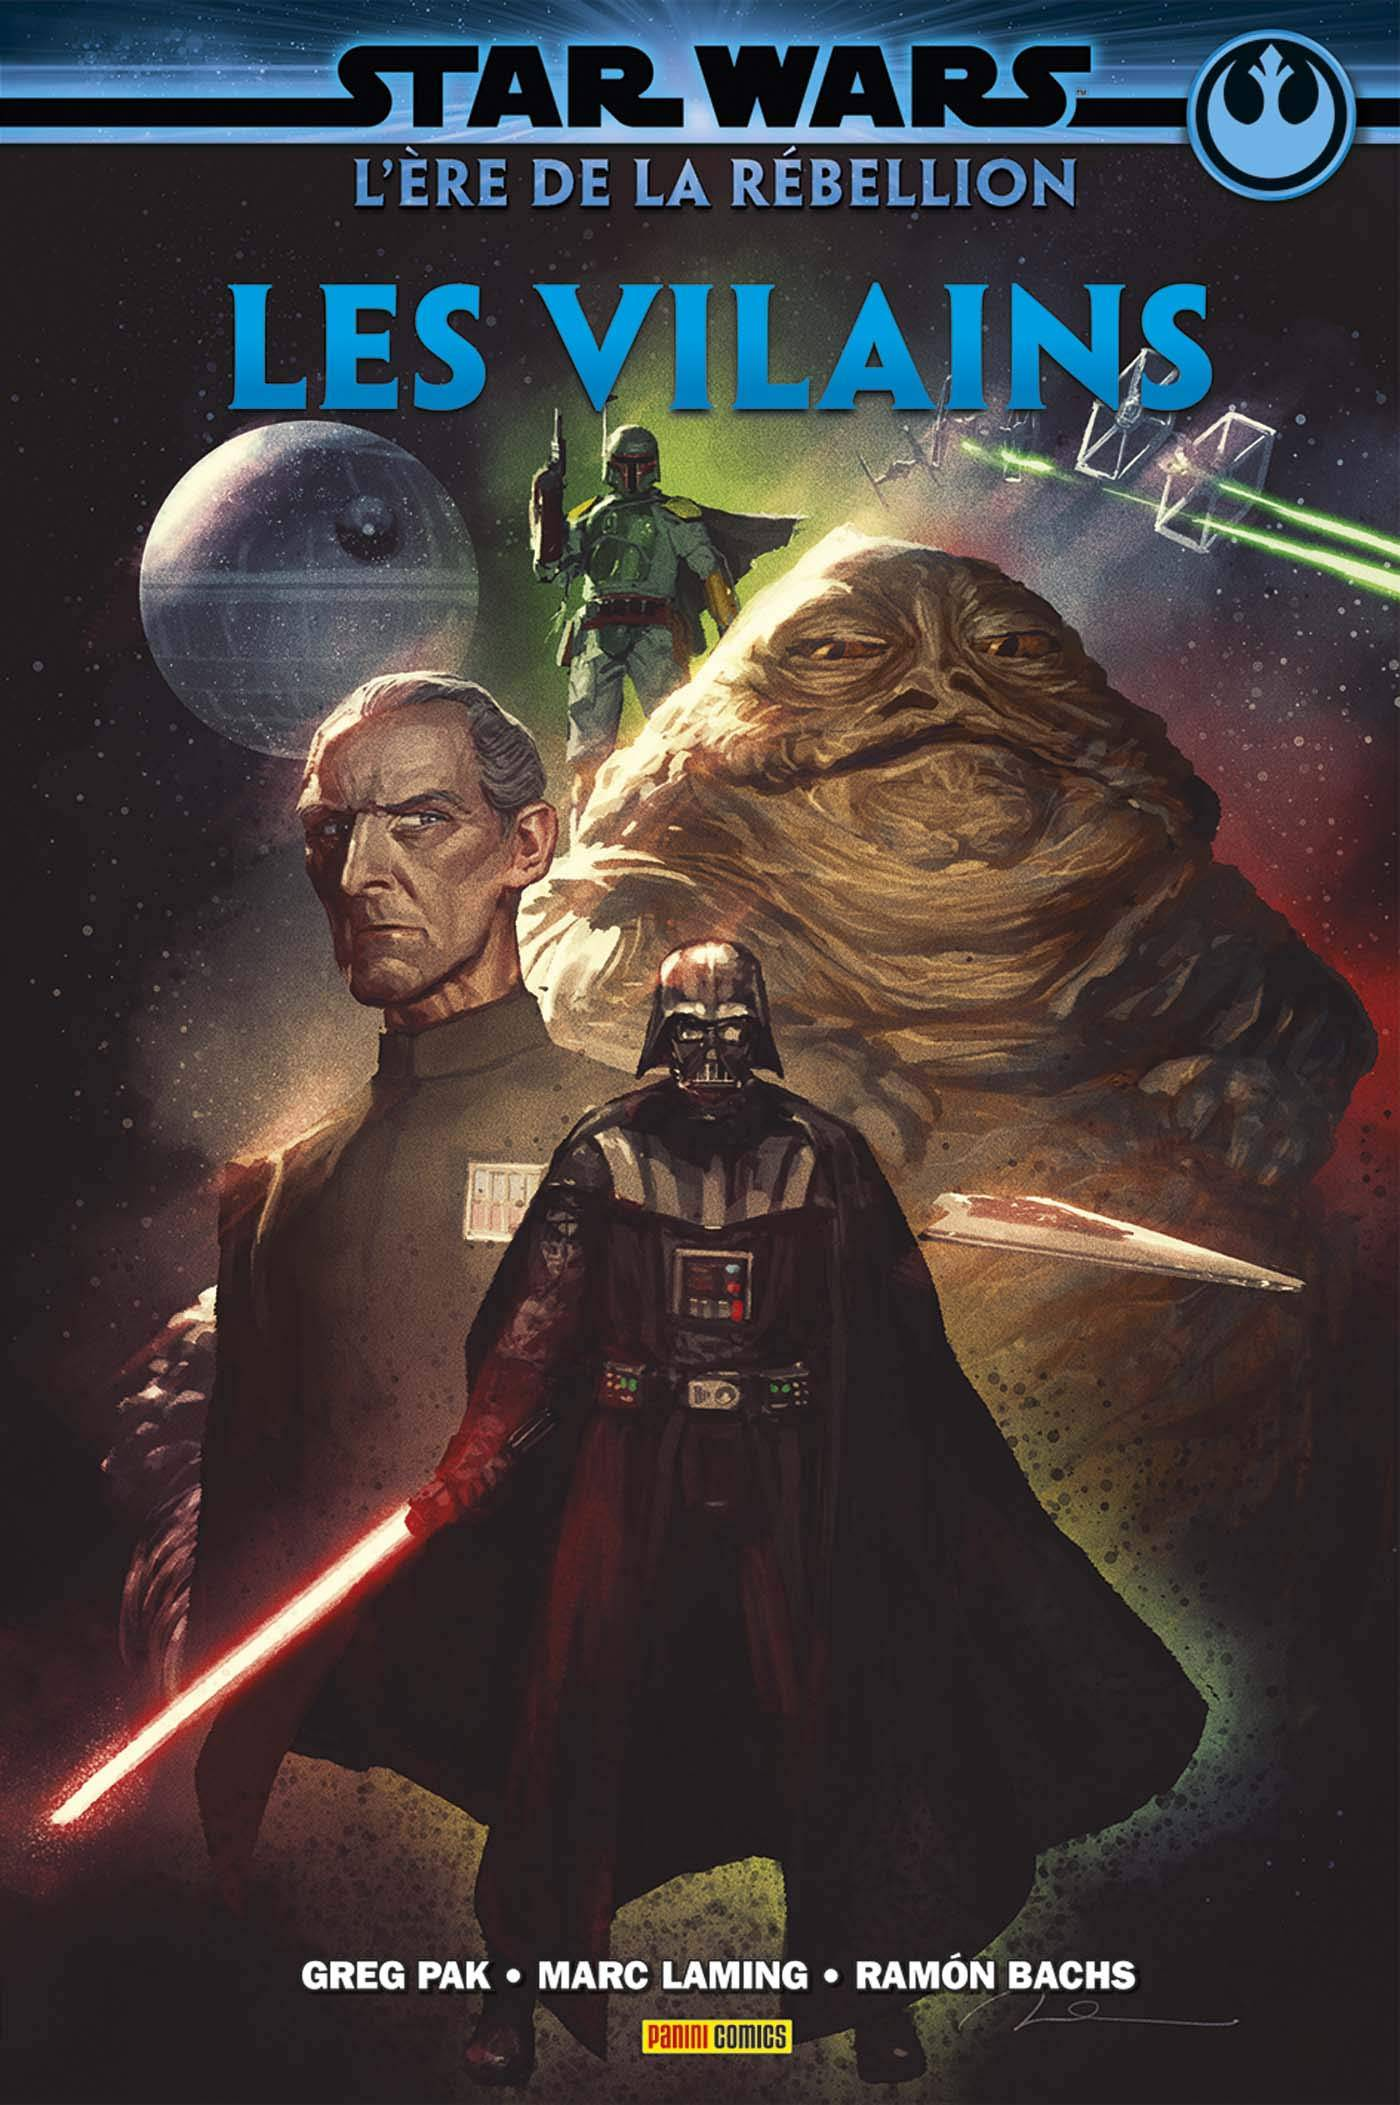 Star Wars l'ère de la Rebellion: Les Vilains